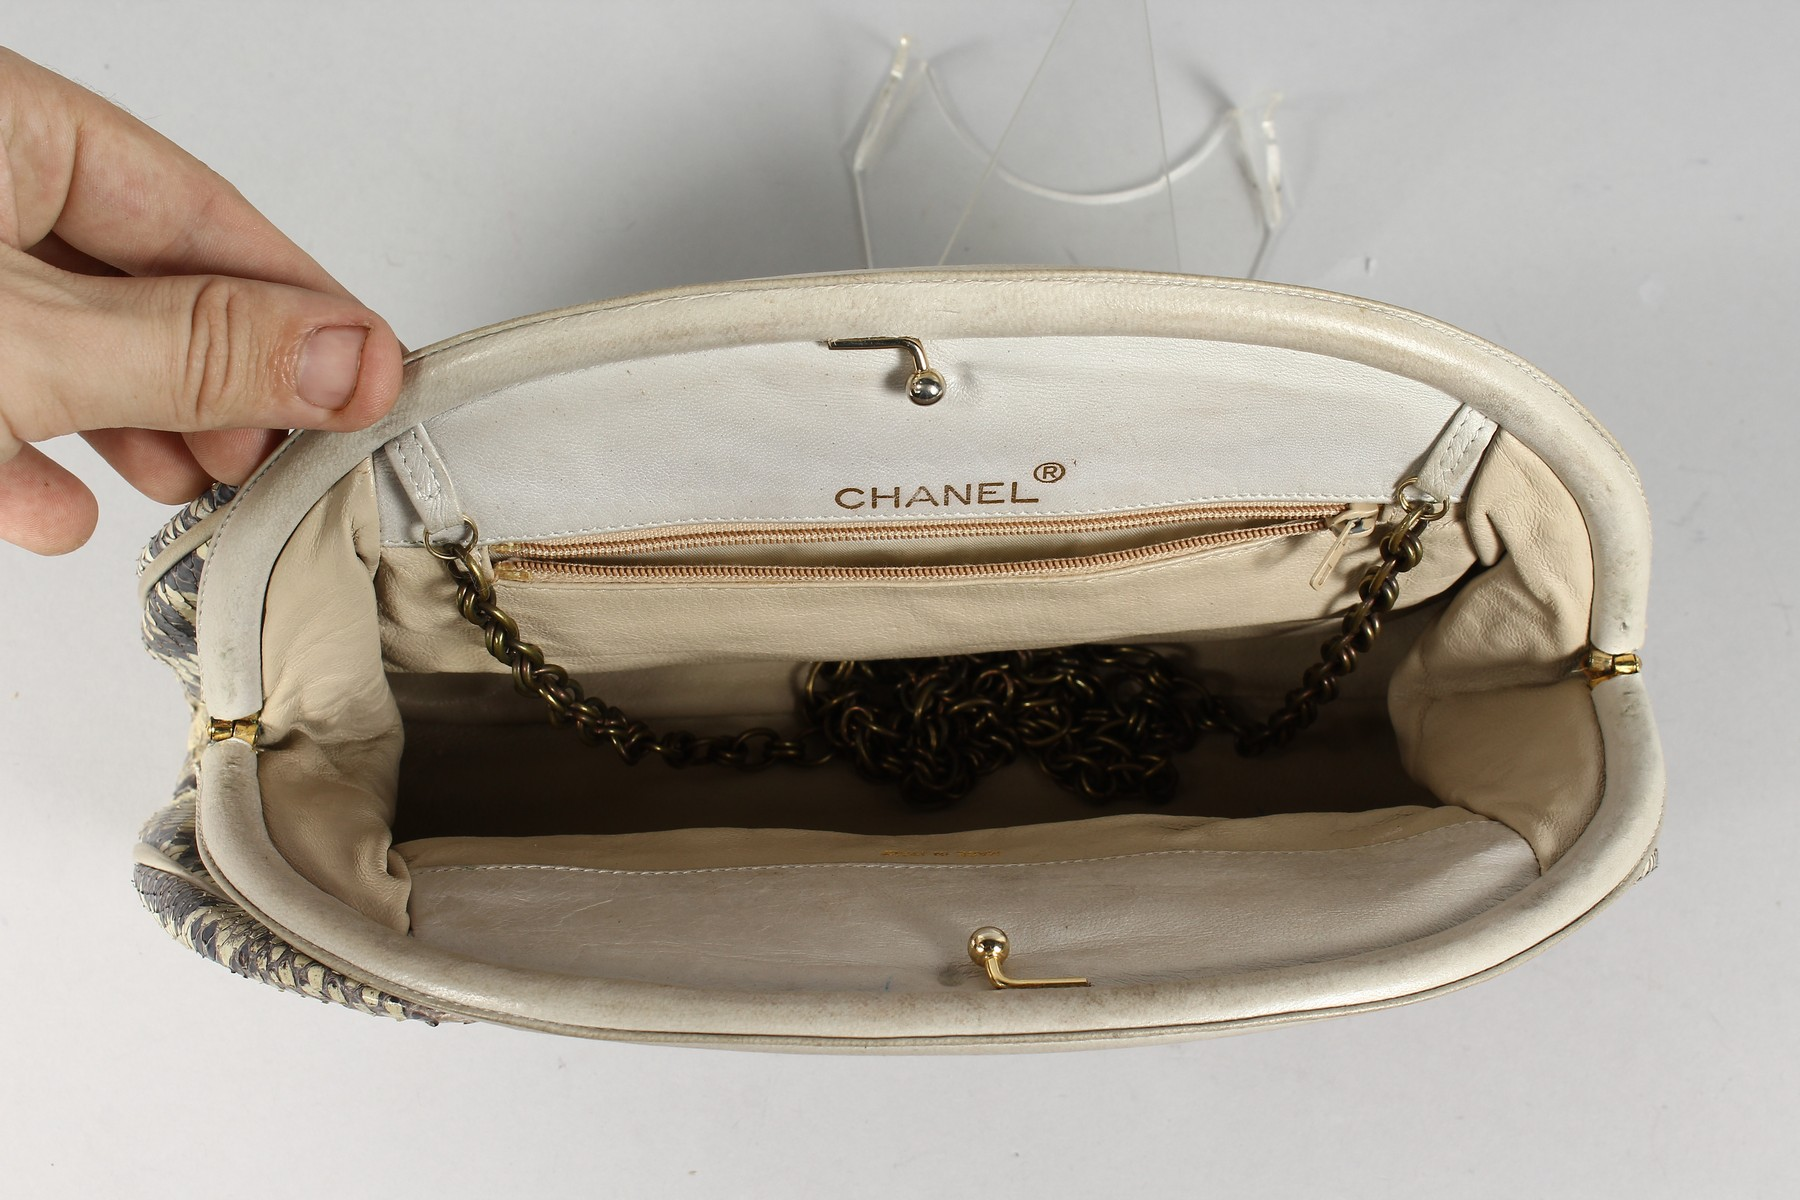 A CHANEL SNAKESKIN BAG with leather interior. Made in Italy. 11ins long. - Image 5 of 9